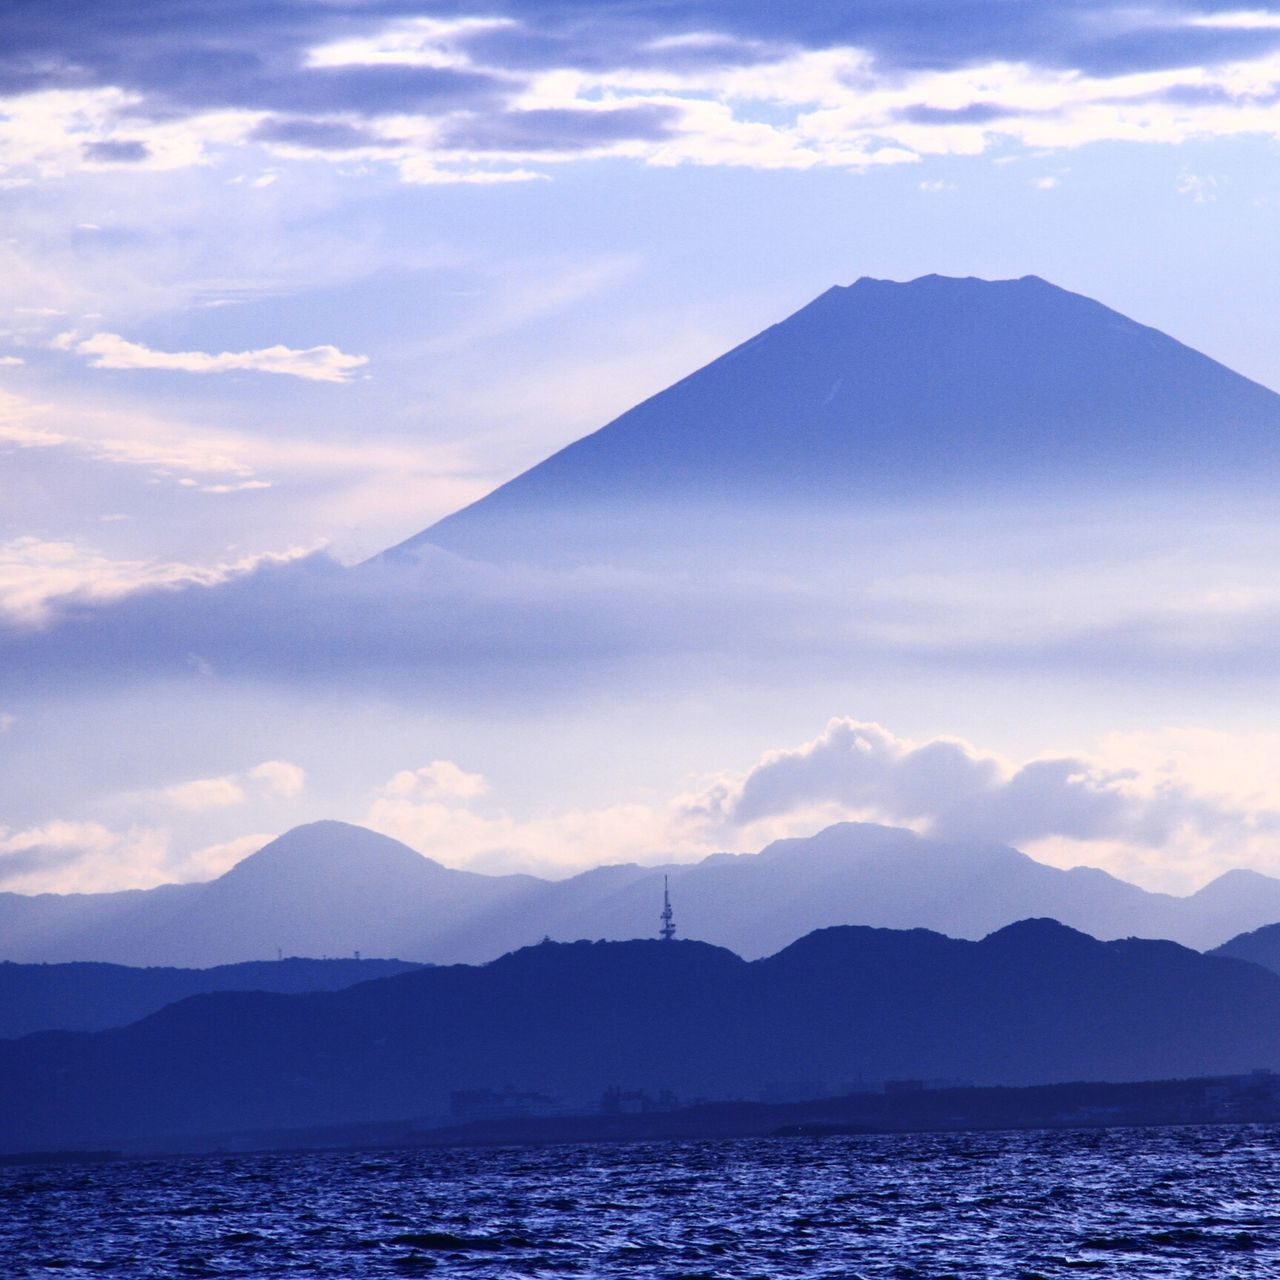 No People Morning Morning View Sea View 富士山 Travelphotography Travel Photography Japan Onedaytrip Catch The Moment Mt.Fuji EyeEm Gallery World Traveller Travel Silhouette EyeEm Best Shots Sea And Sky EyeEmNewHere Sea